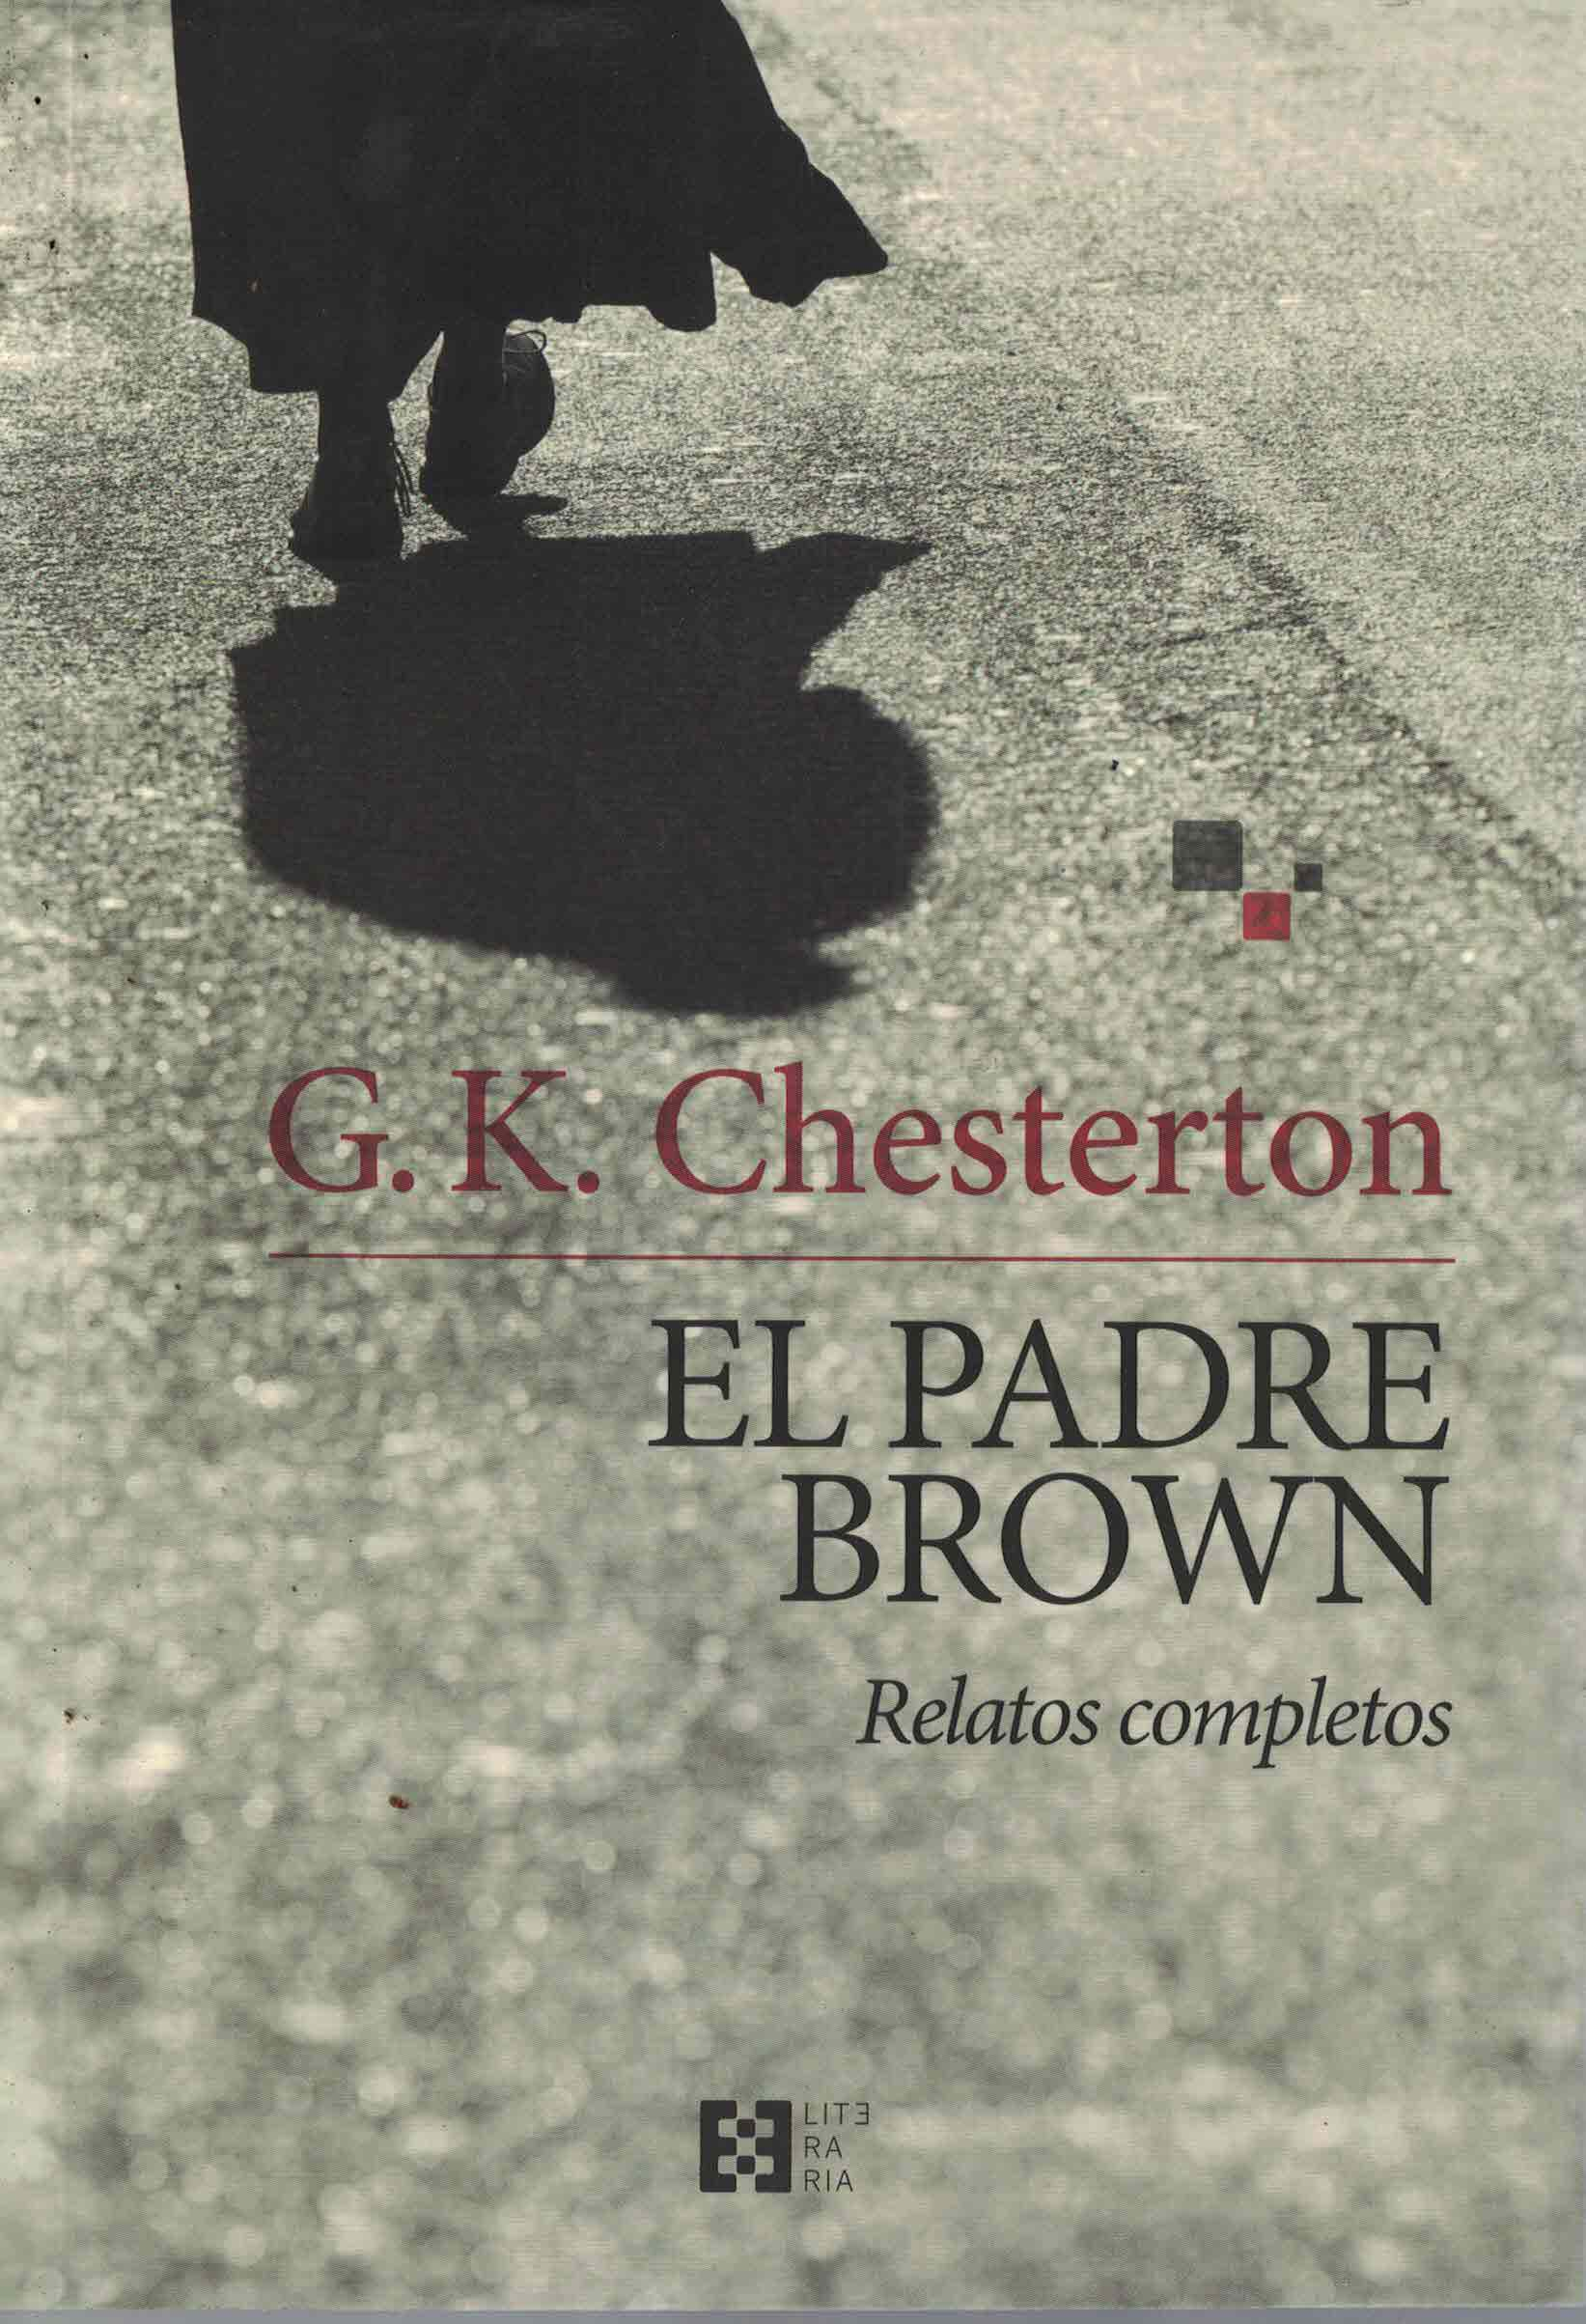 El padre Brown «Relatos completos